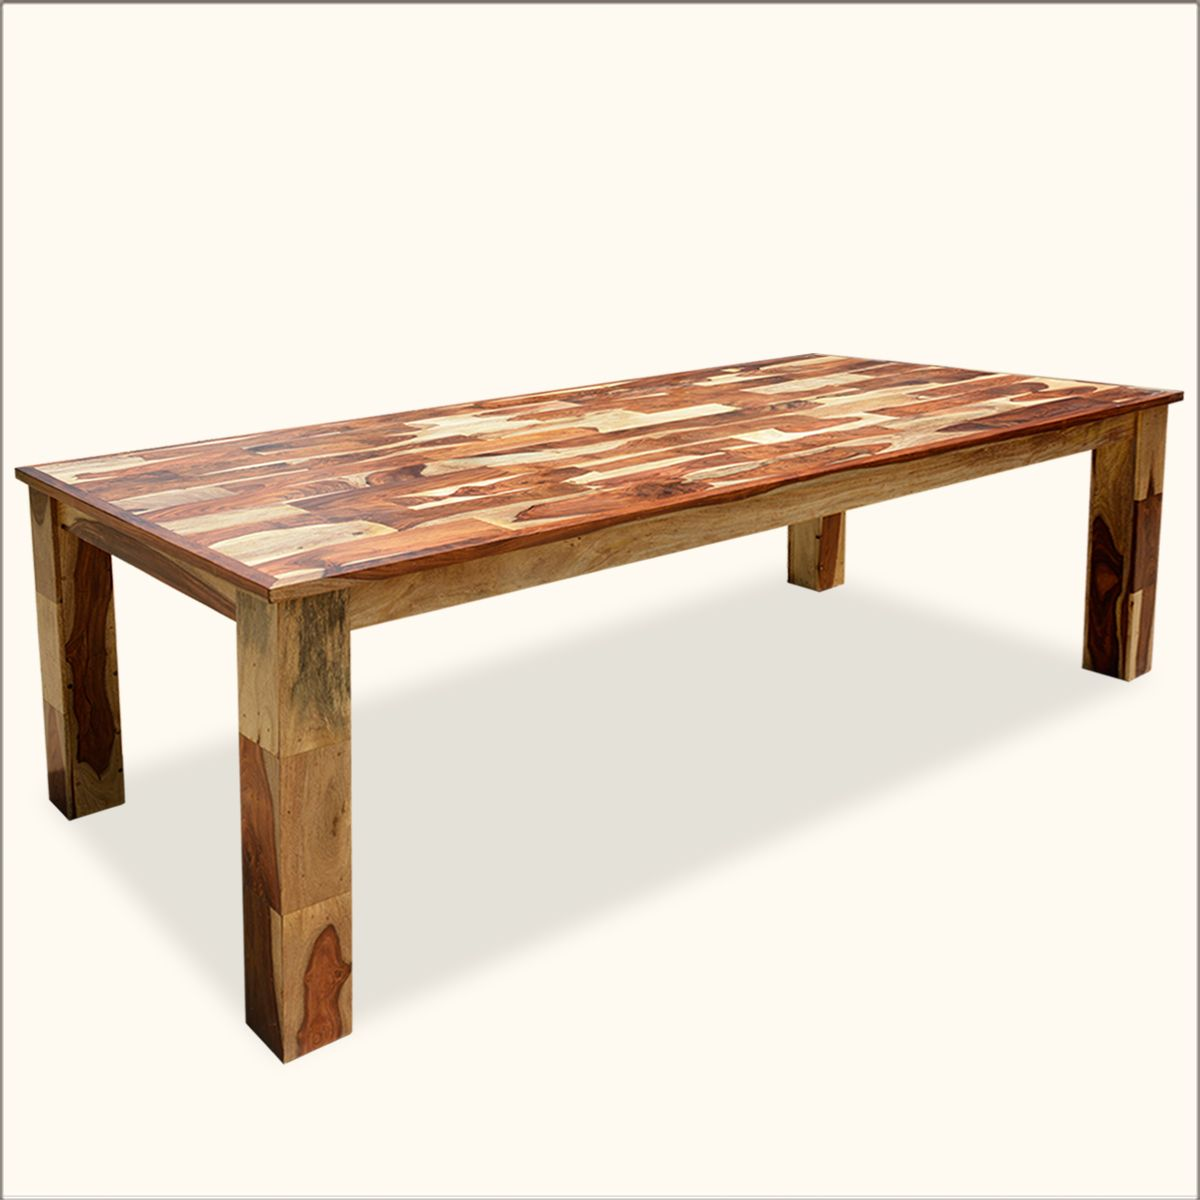 Great Contemporary Wooden Tile Large Rectangular Solid Wood Dining Table